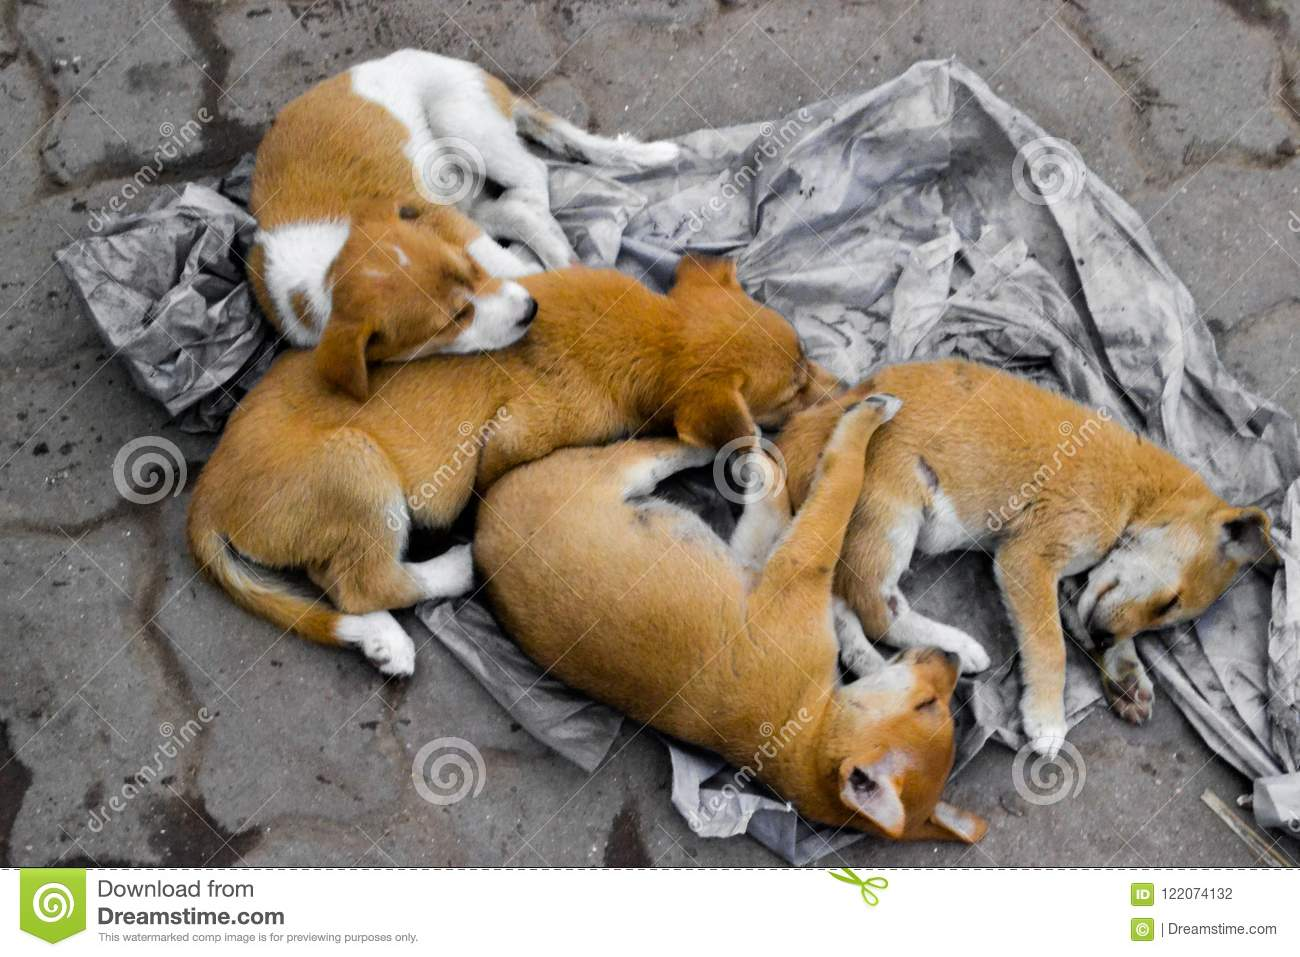 Four abandoned dog siblings